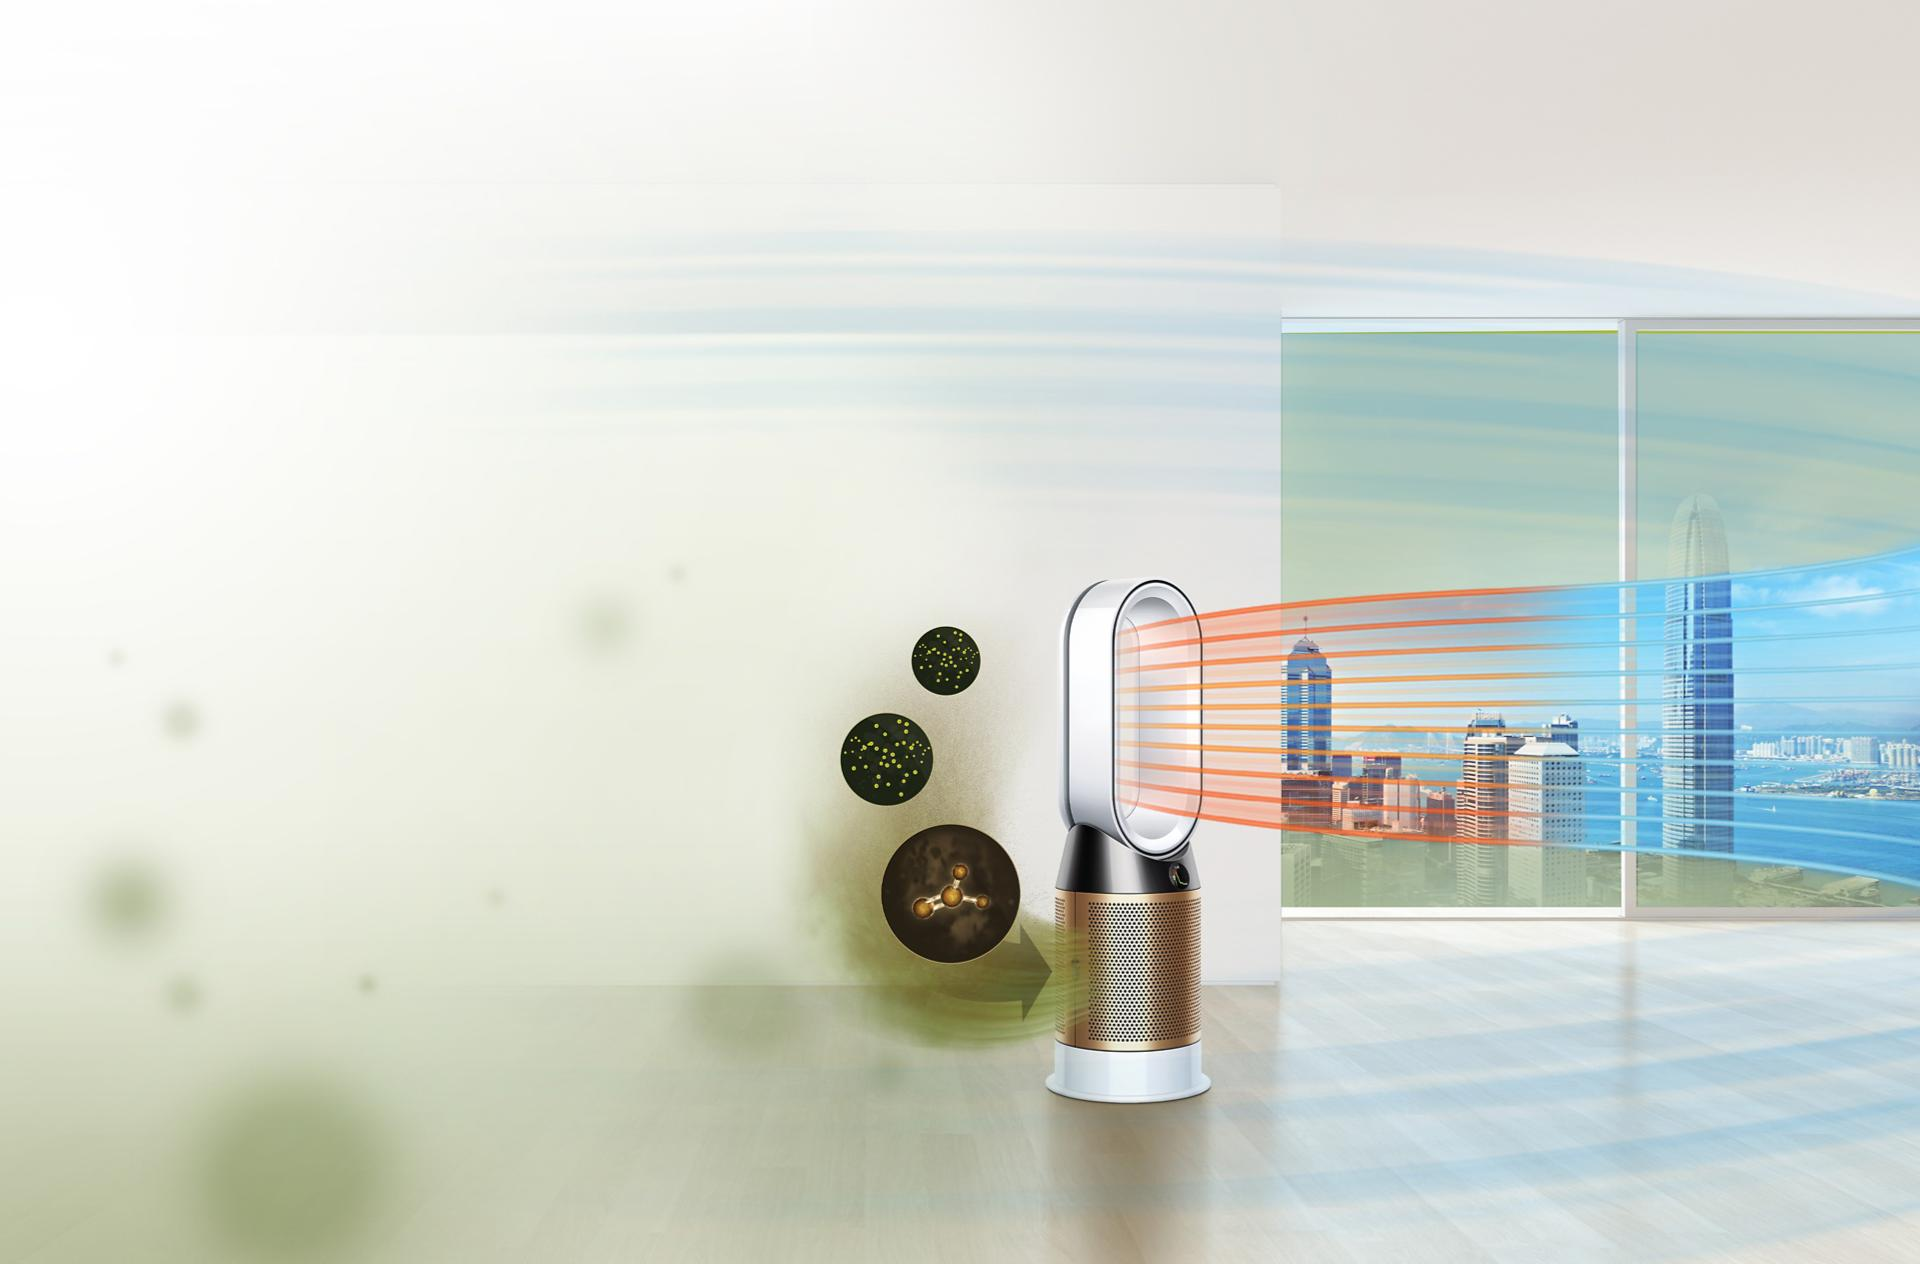 Dyson Pure Hot+Cool Cryptomic projecting purified air